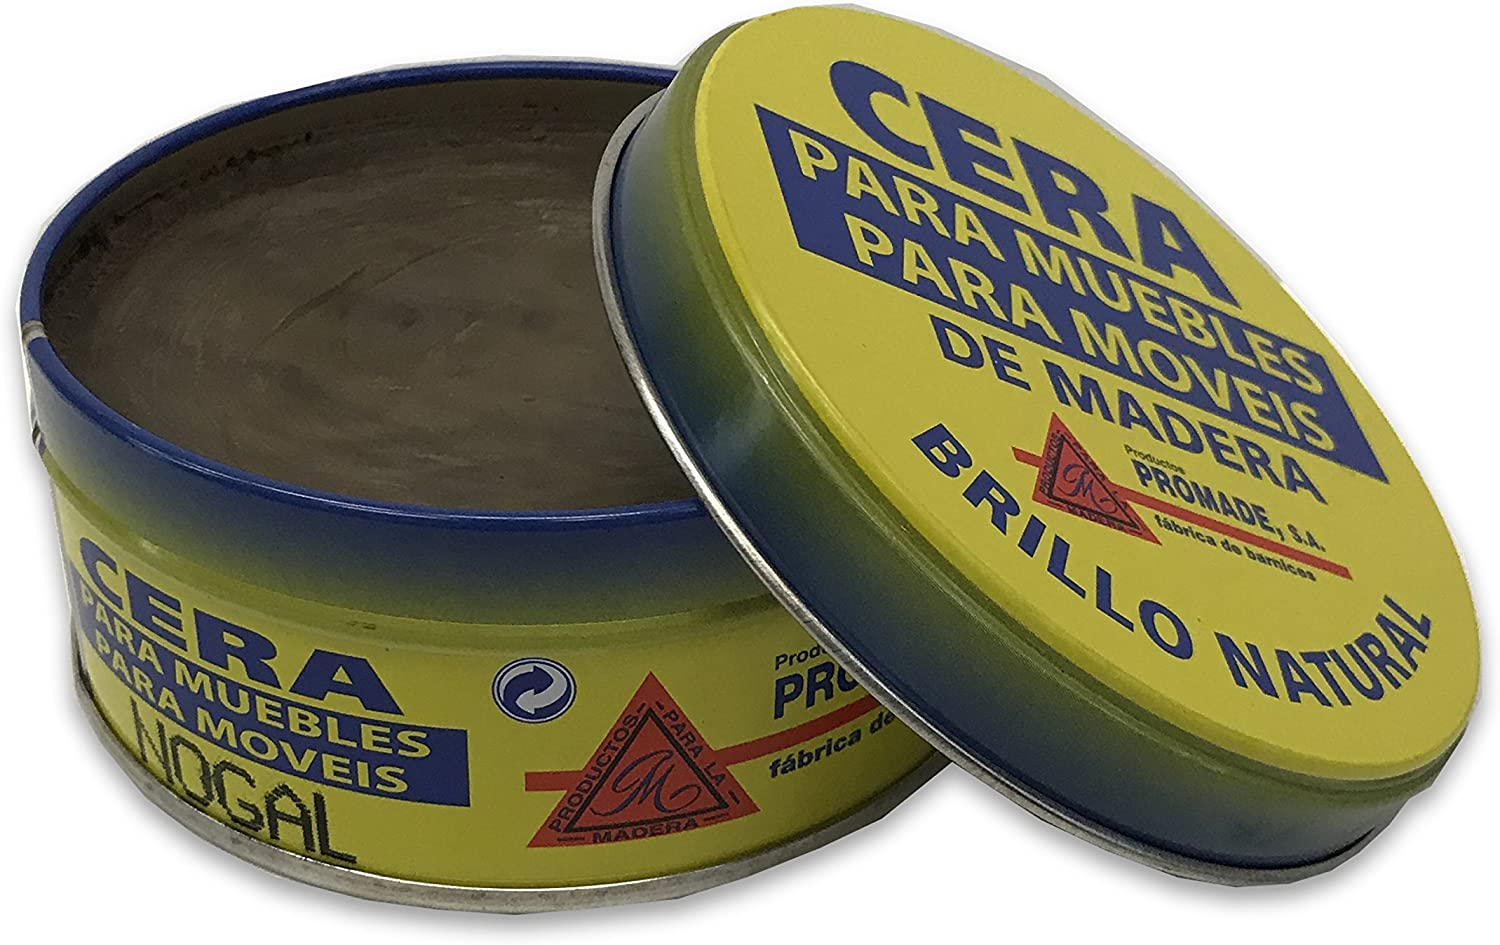 Productos Promade Acep132 - Cera muebles mad 250 gr ...